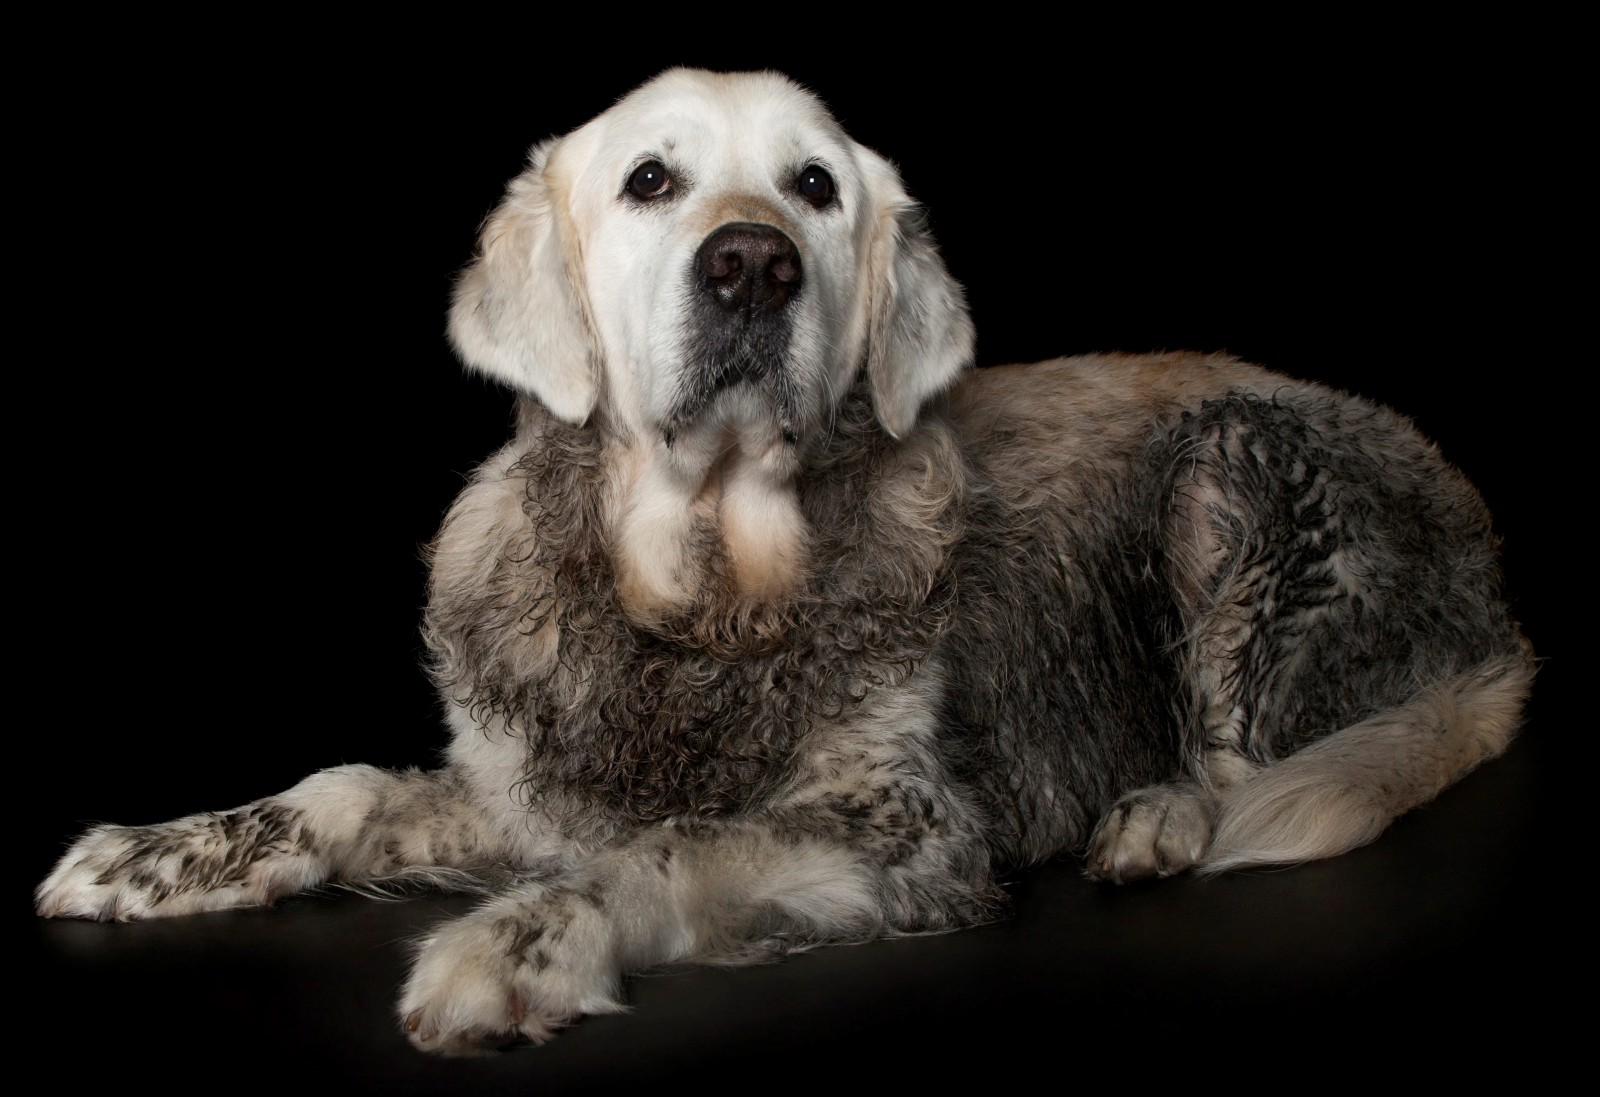 Muddy moment captured forever after dog spoils owner's photoshoot!